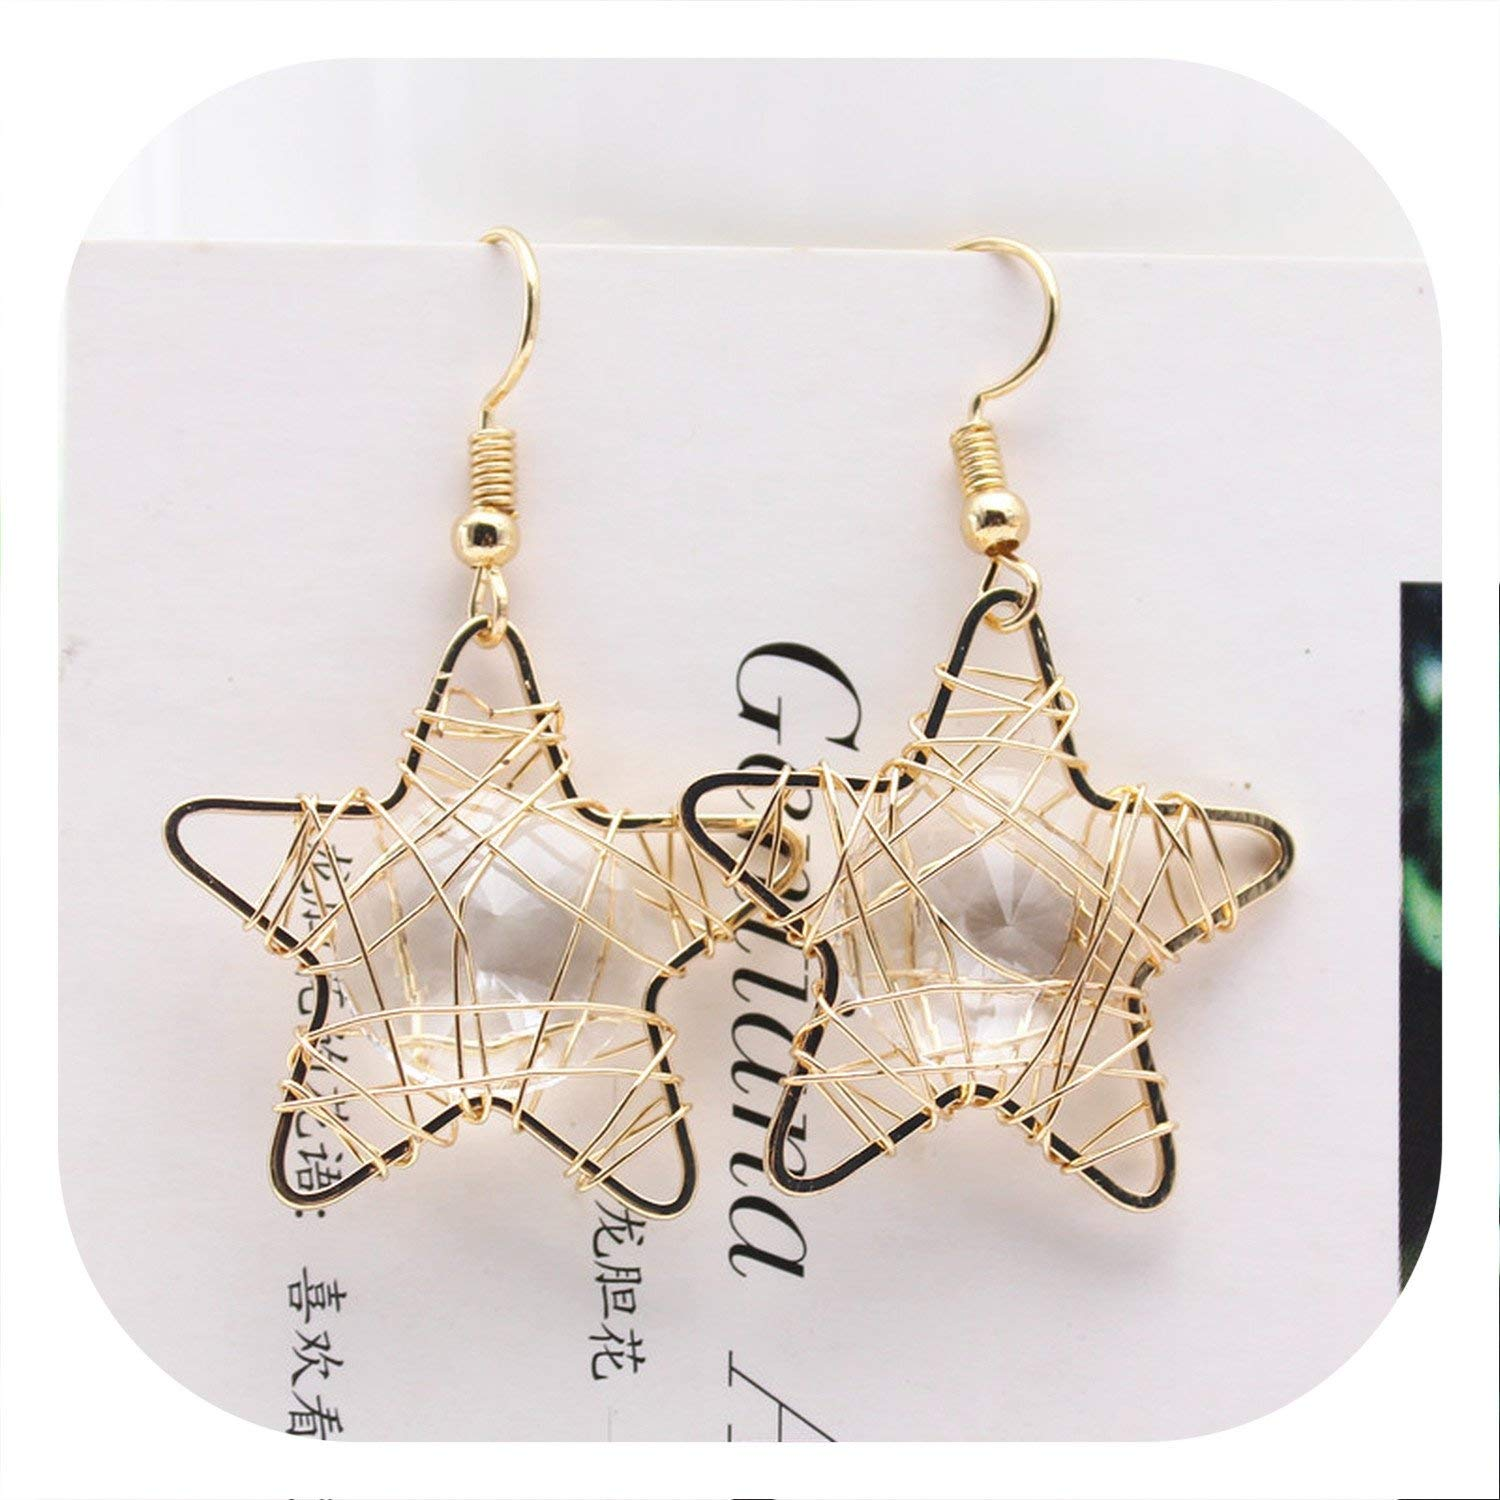 new fashion brand jewelry elegant style Barbed wire Five-pointed star big Crystal stud earrings gold earring for women gift